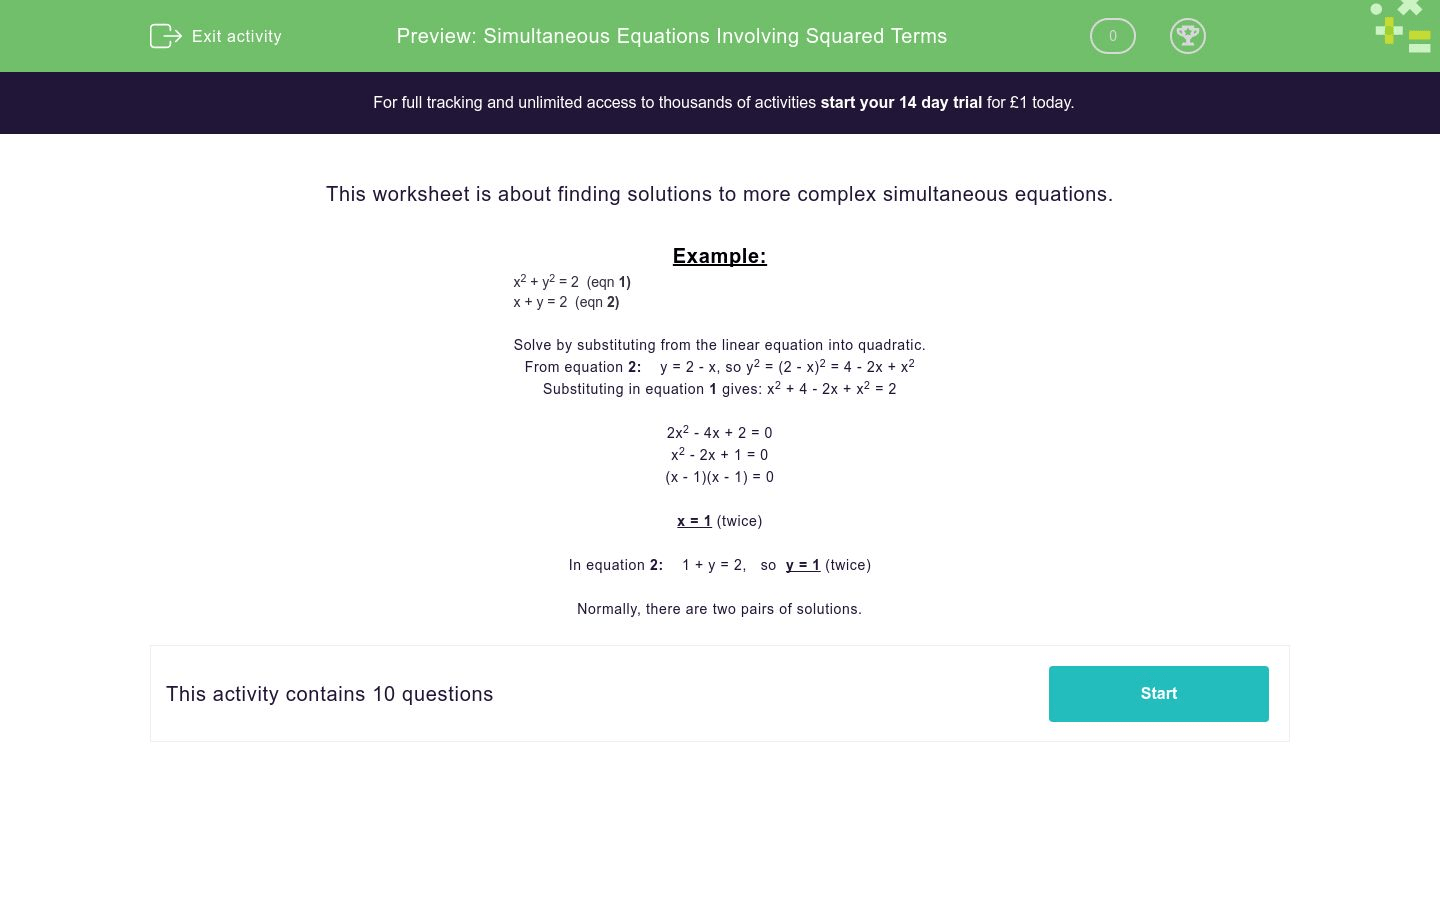 Simultaneous Equations Involving Squared Terms Worksheet